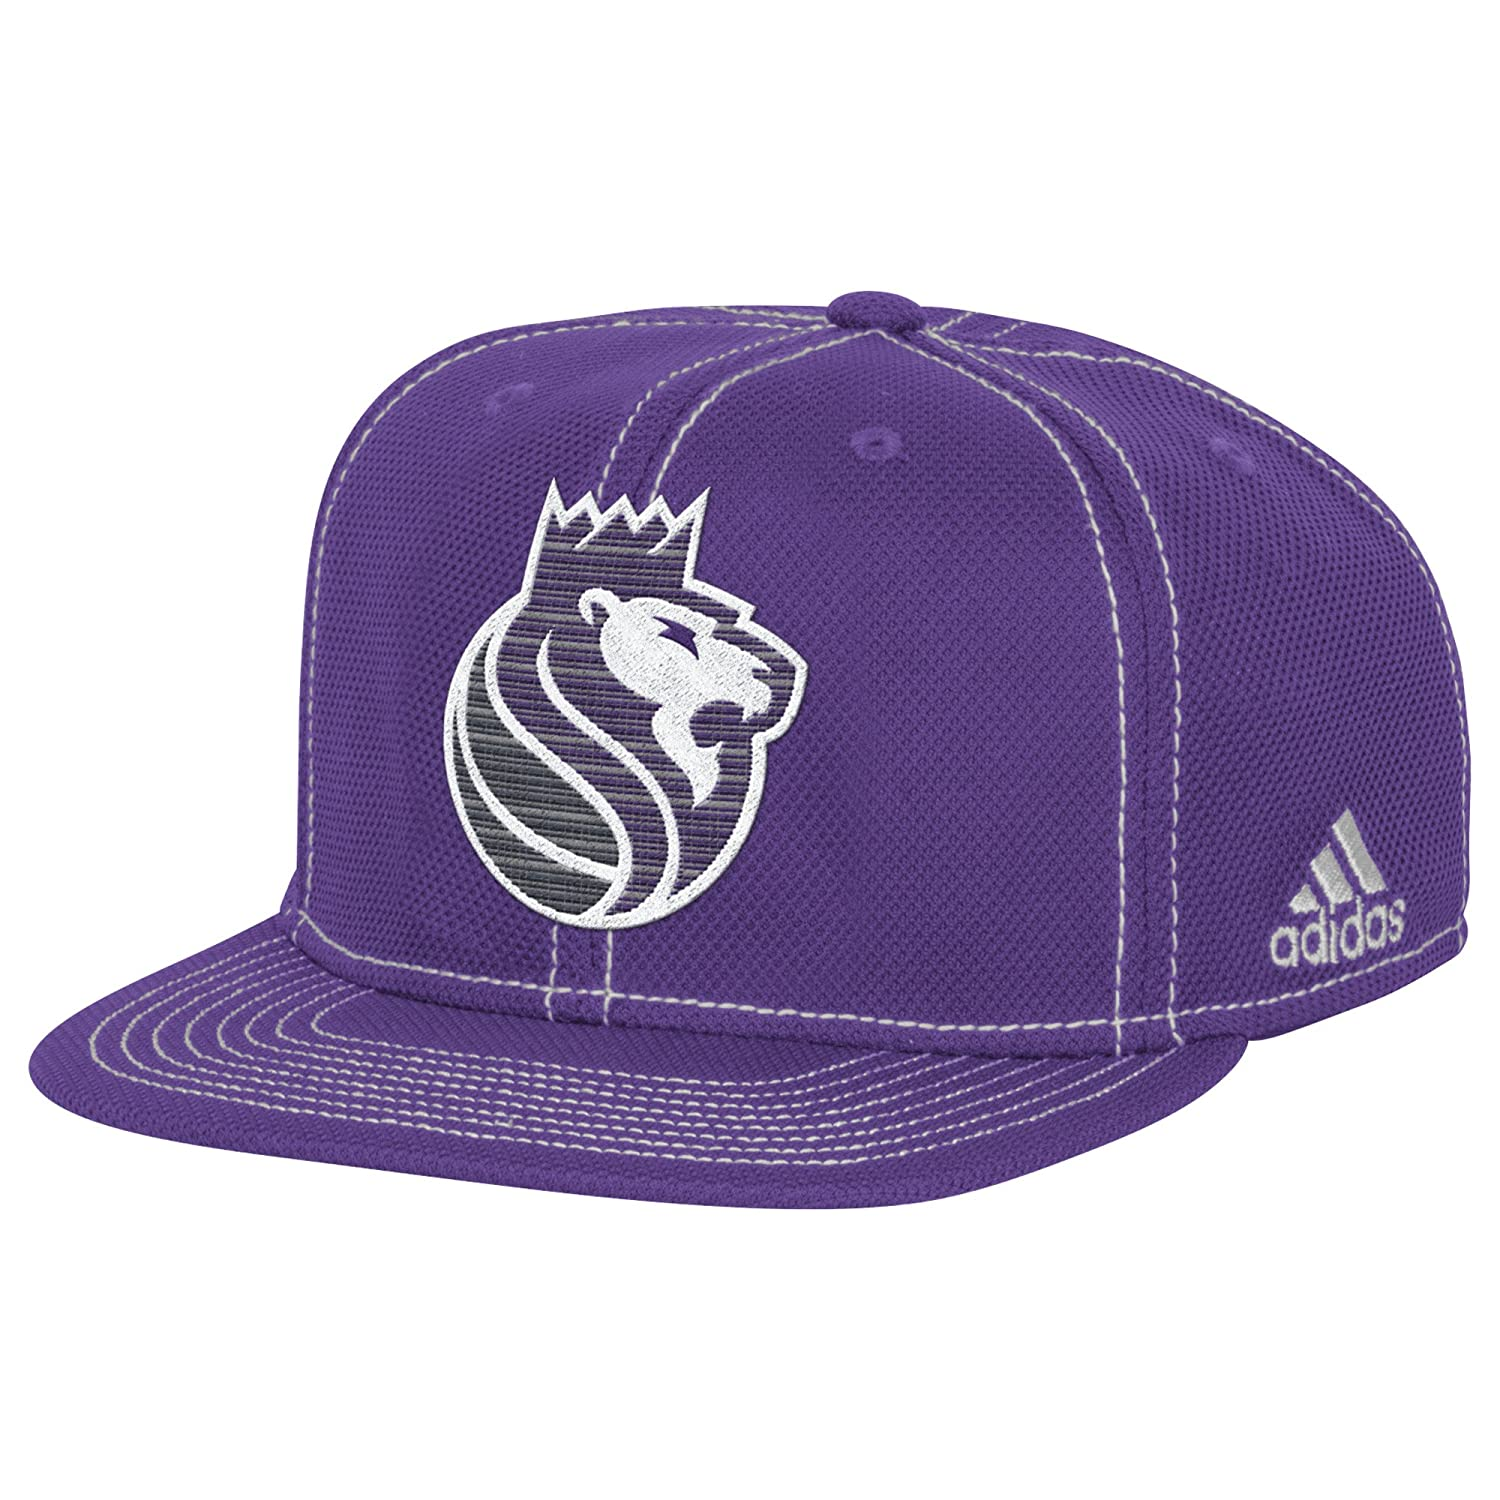 quality design 4fefc b5435 ... coupon code best price amazon nba denver nuggets mens lights out flat  brim snapback cap one